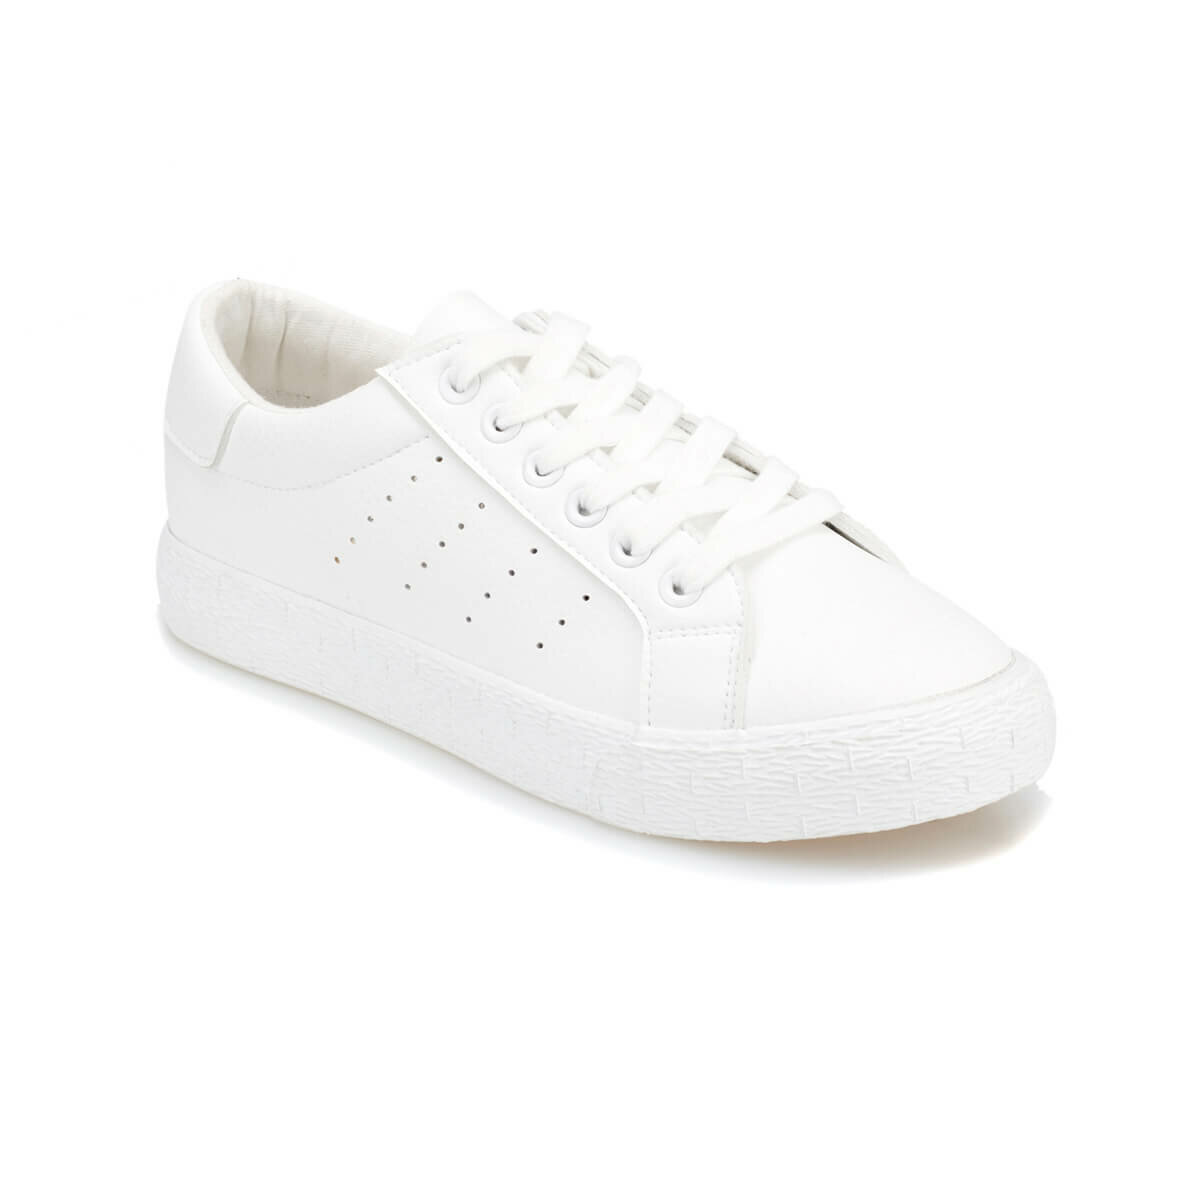 FLO POLIN White Women 'S Sneaker Shoes KINETIX